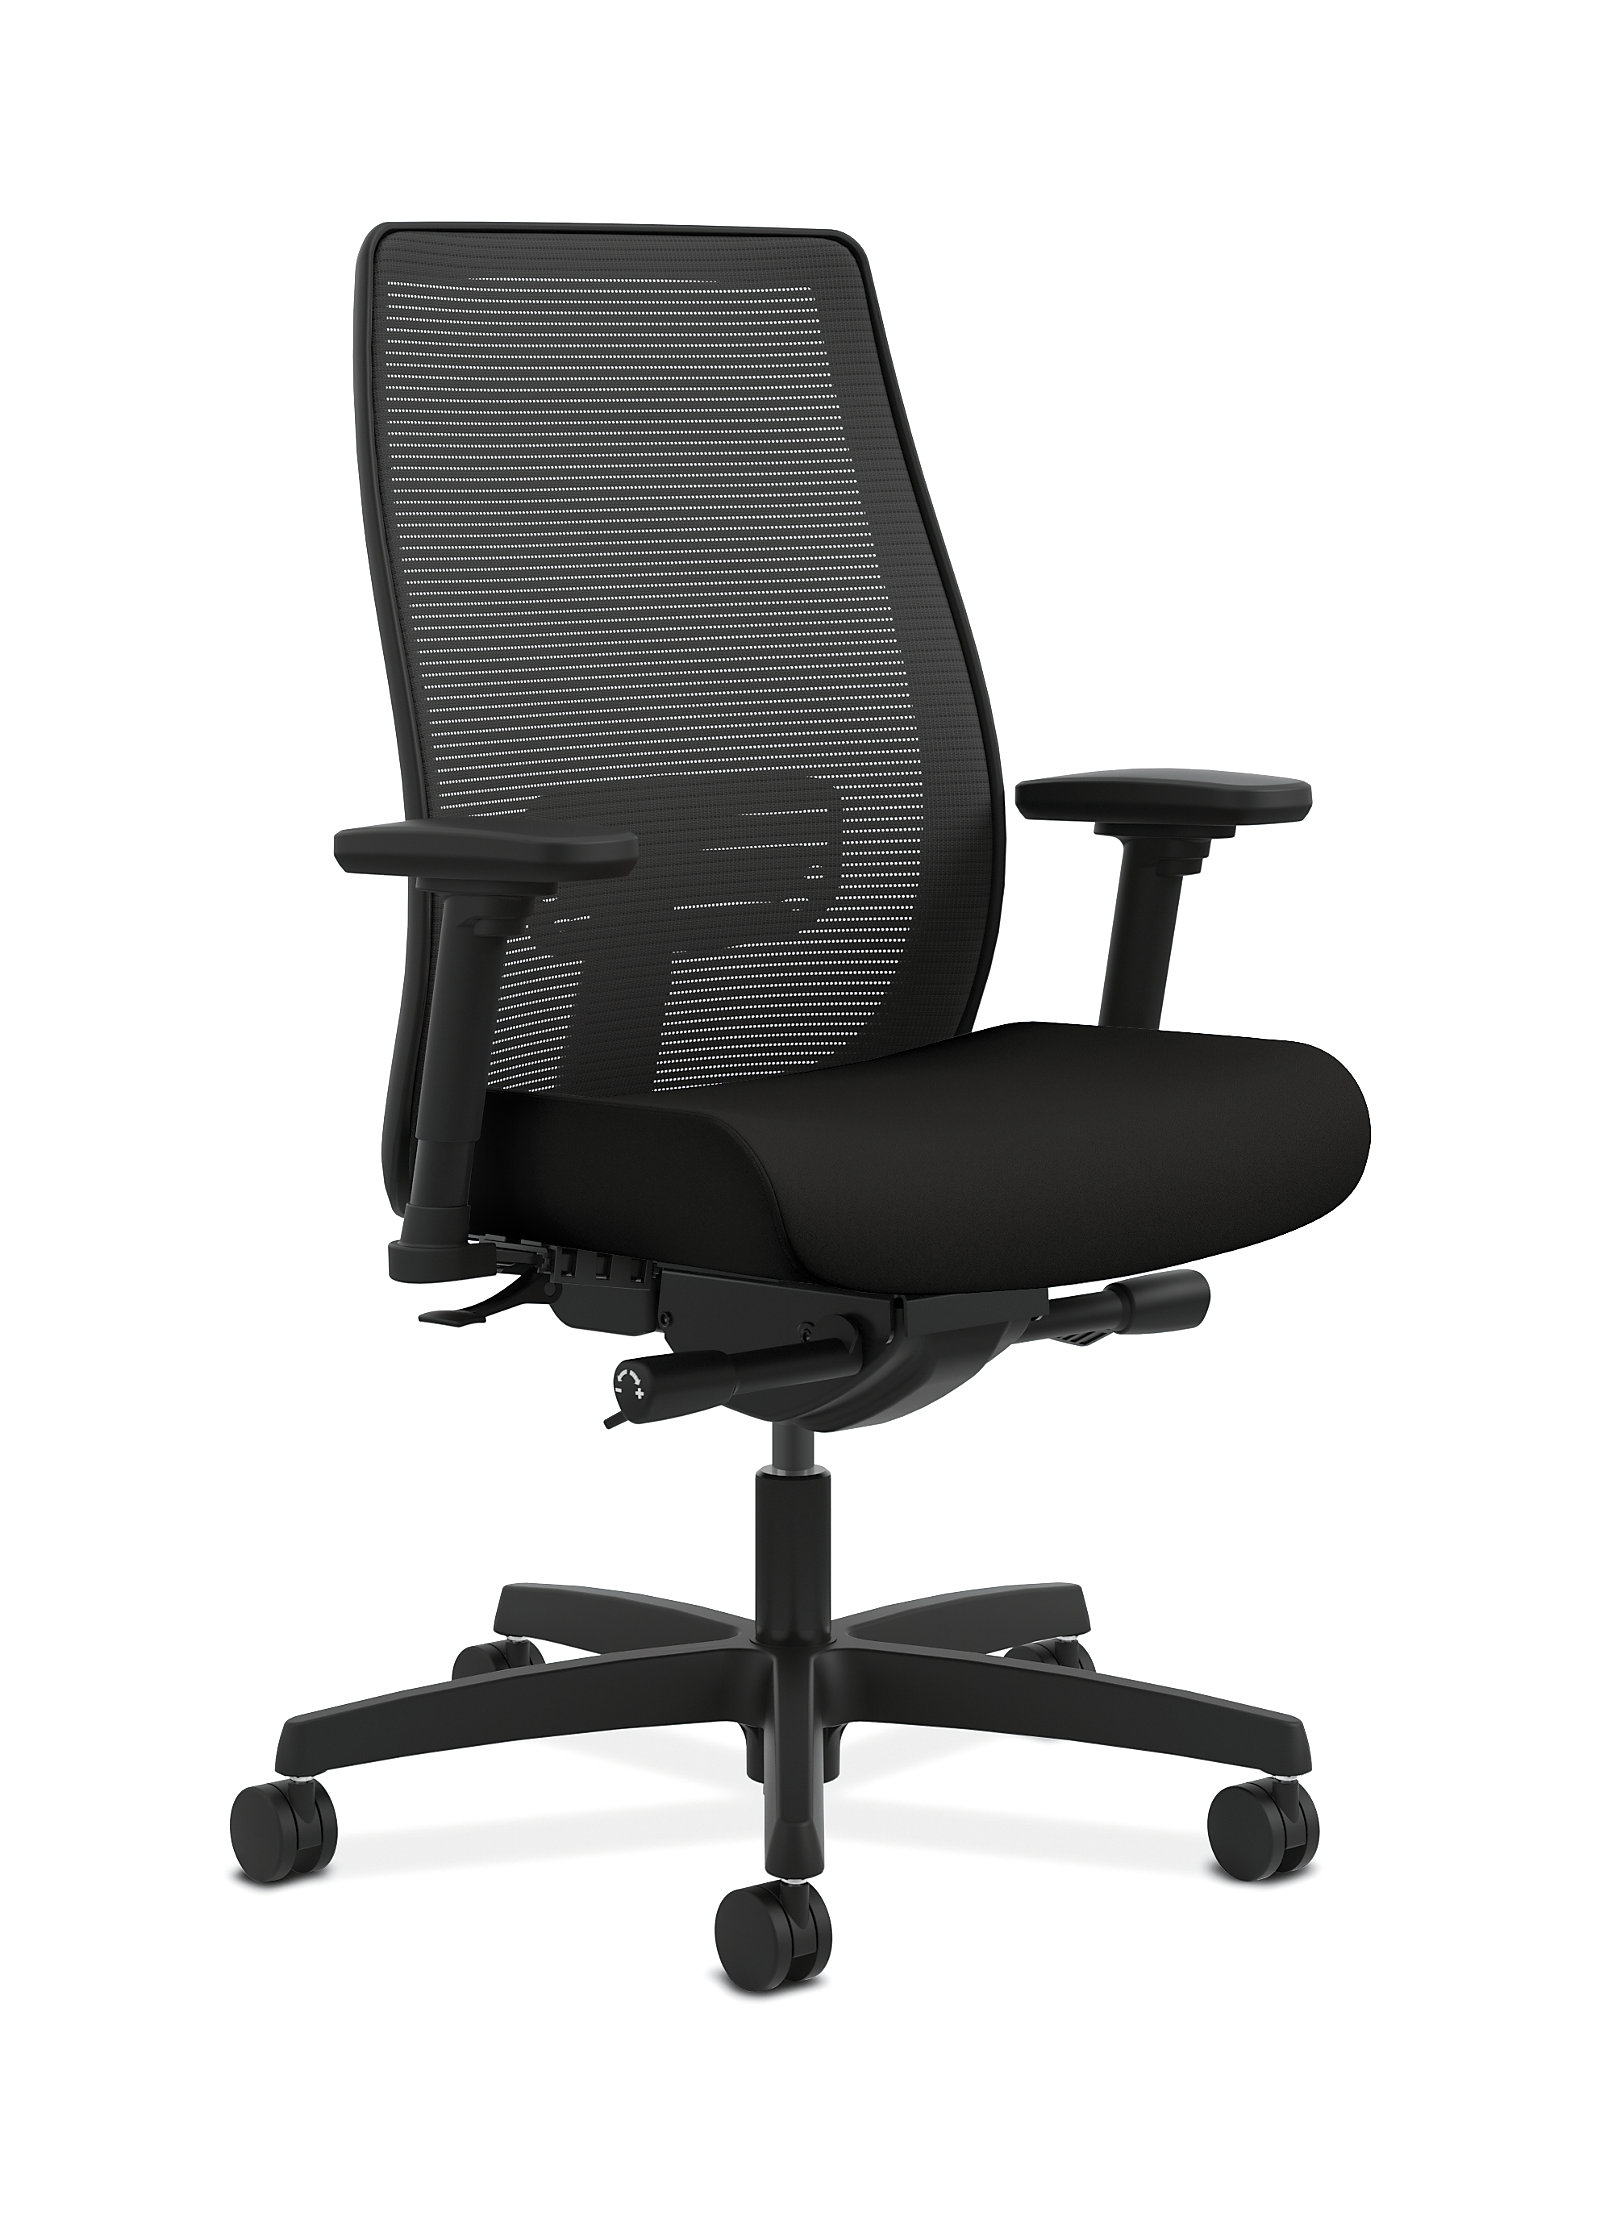 Office chair back view - Hon Endorse Collection Mesh Mid Back Task Chair Black Front Side View Hlwm Y2